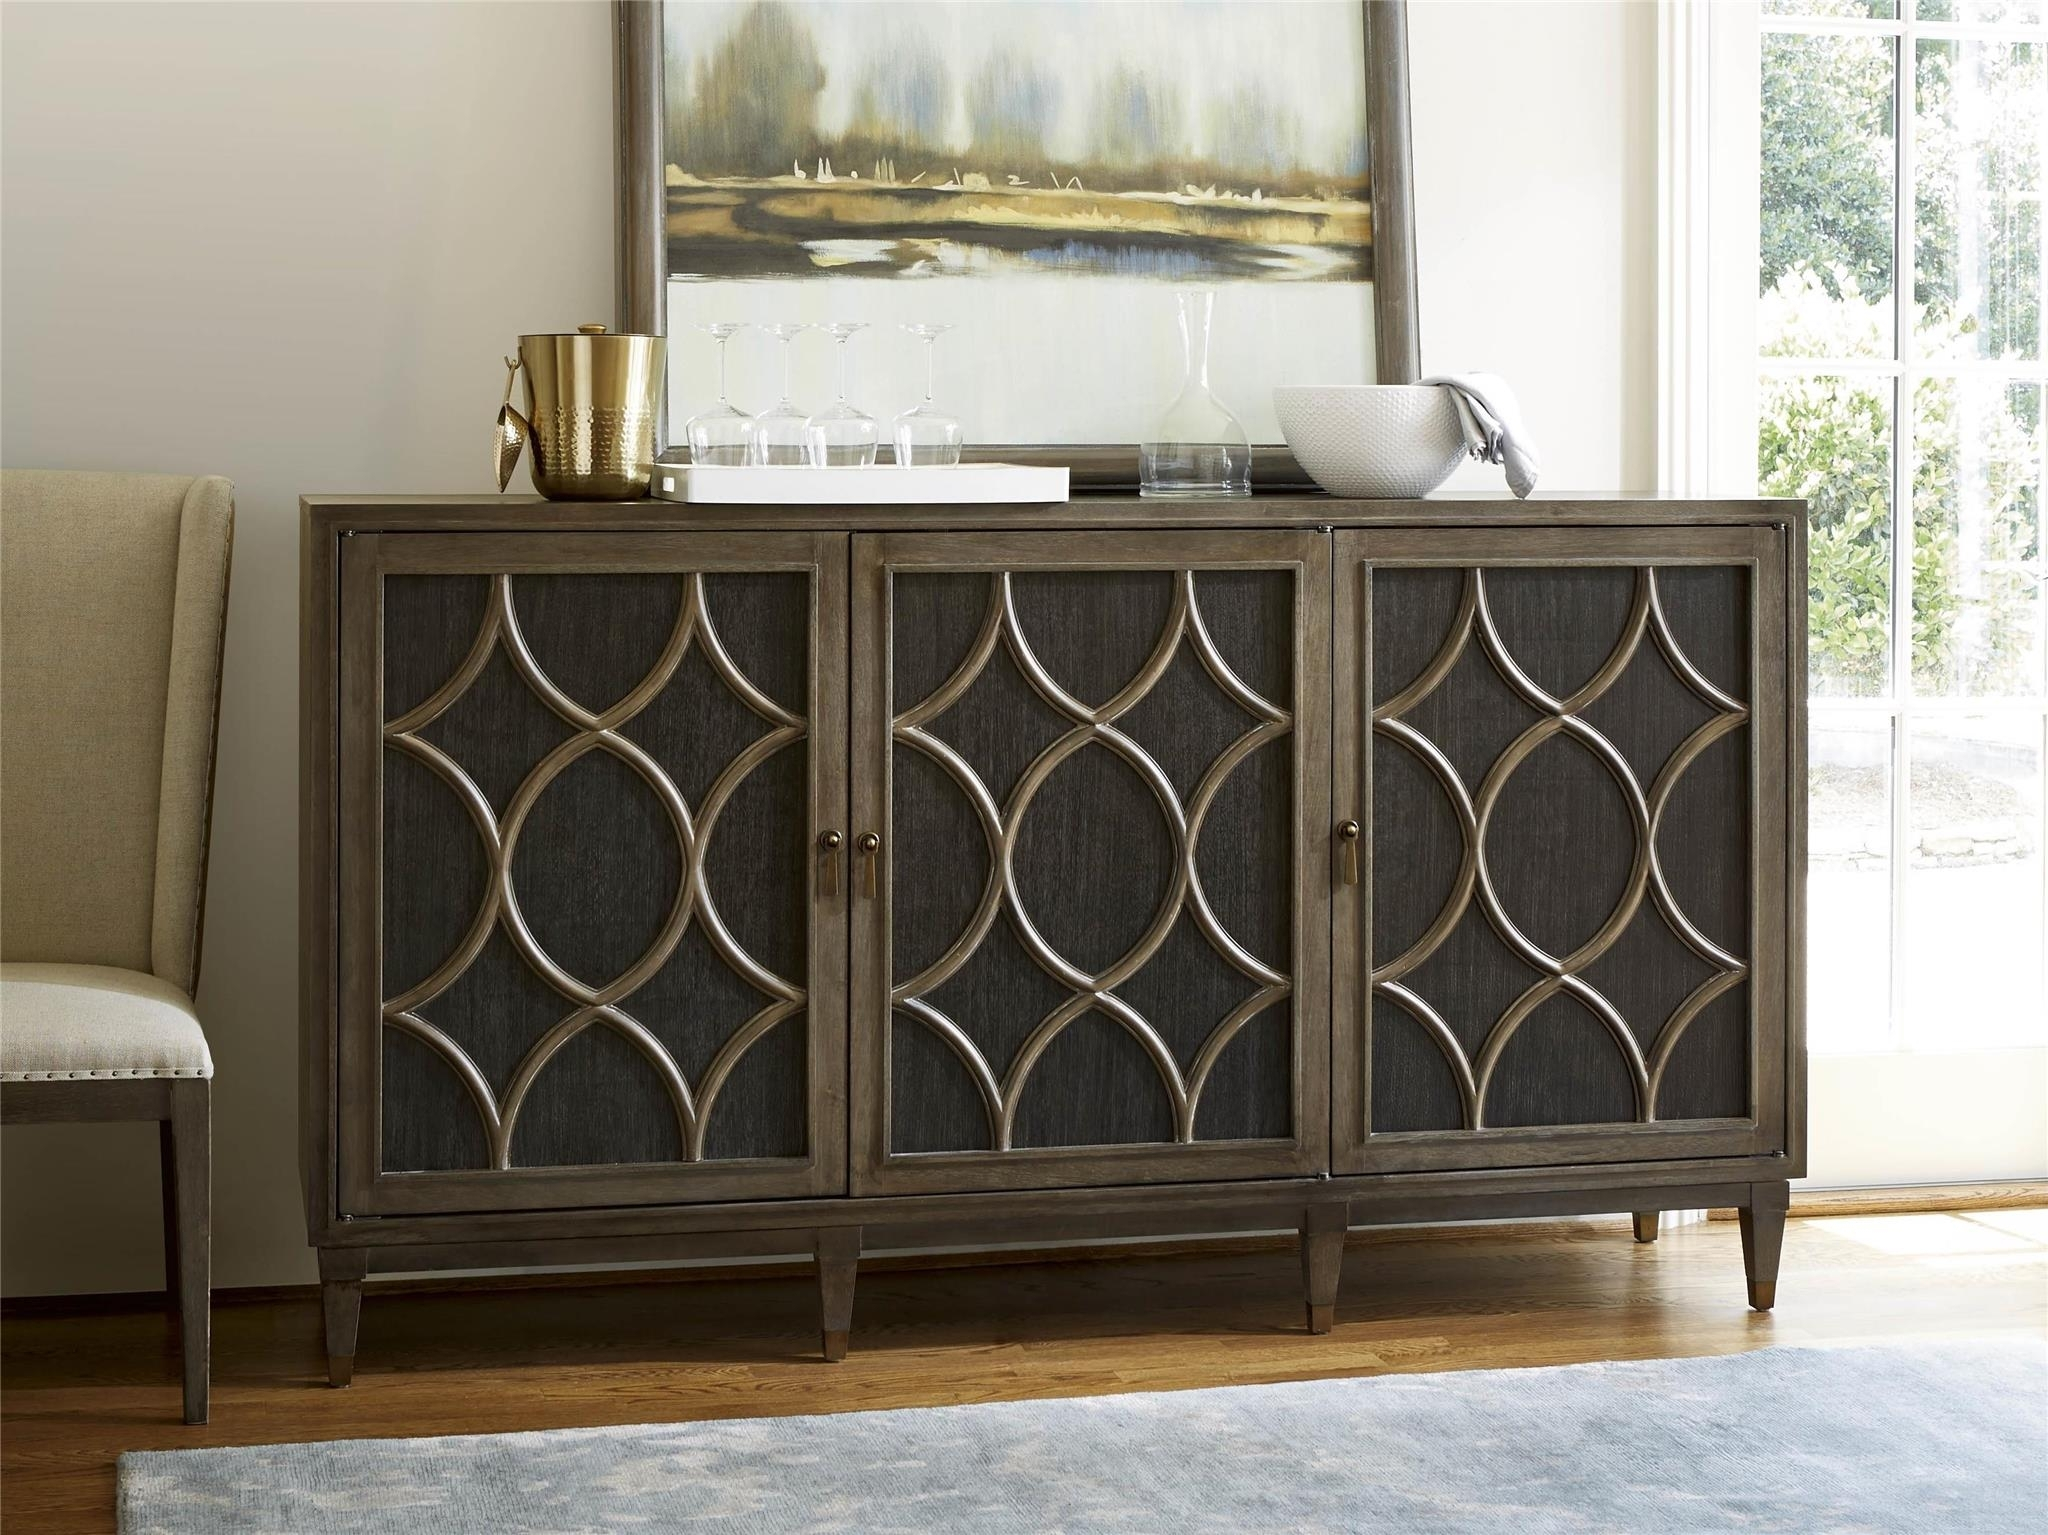 Universal Furniture | Playlist | Sideboard Inside Recent Iron Sideboards (#18 of 20)